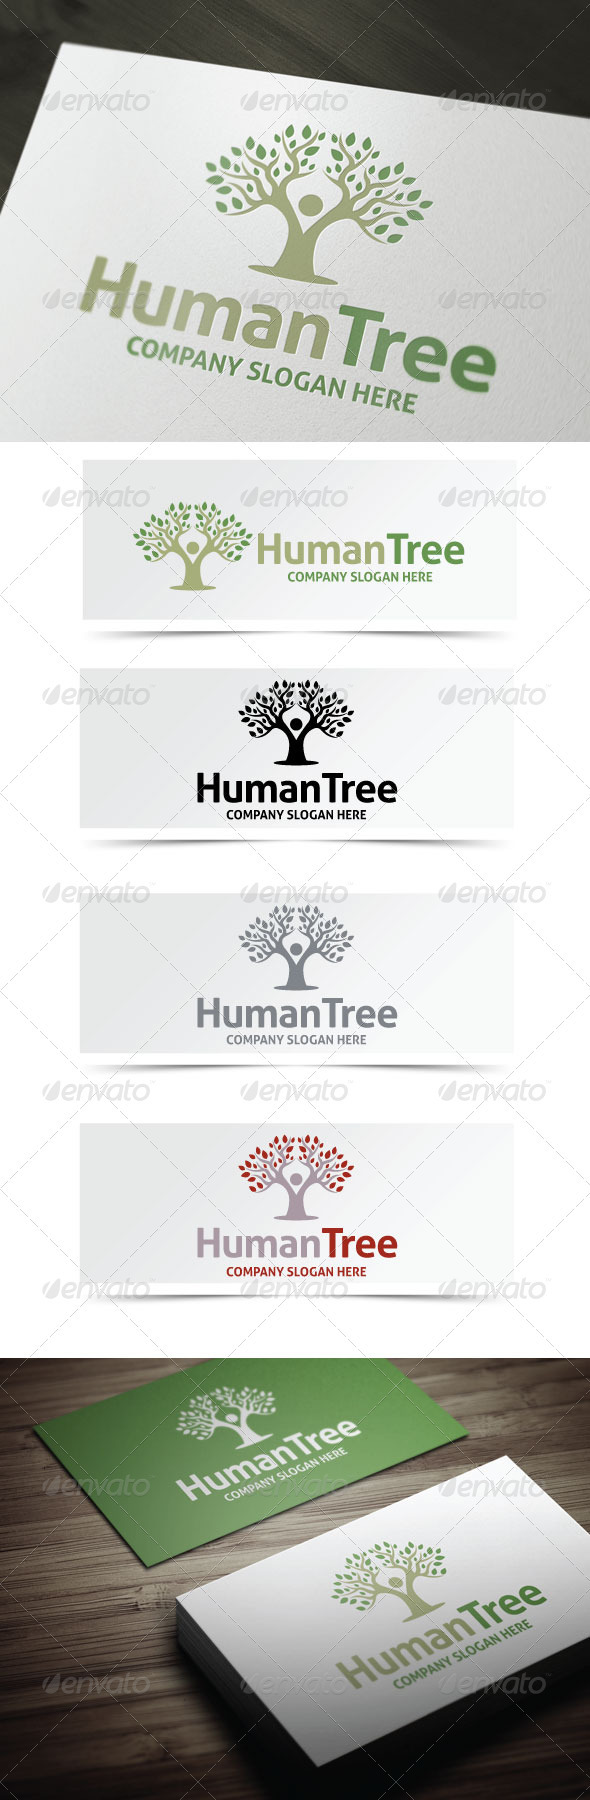 GraphicRiver Human Tree Logo 3719667